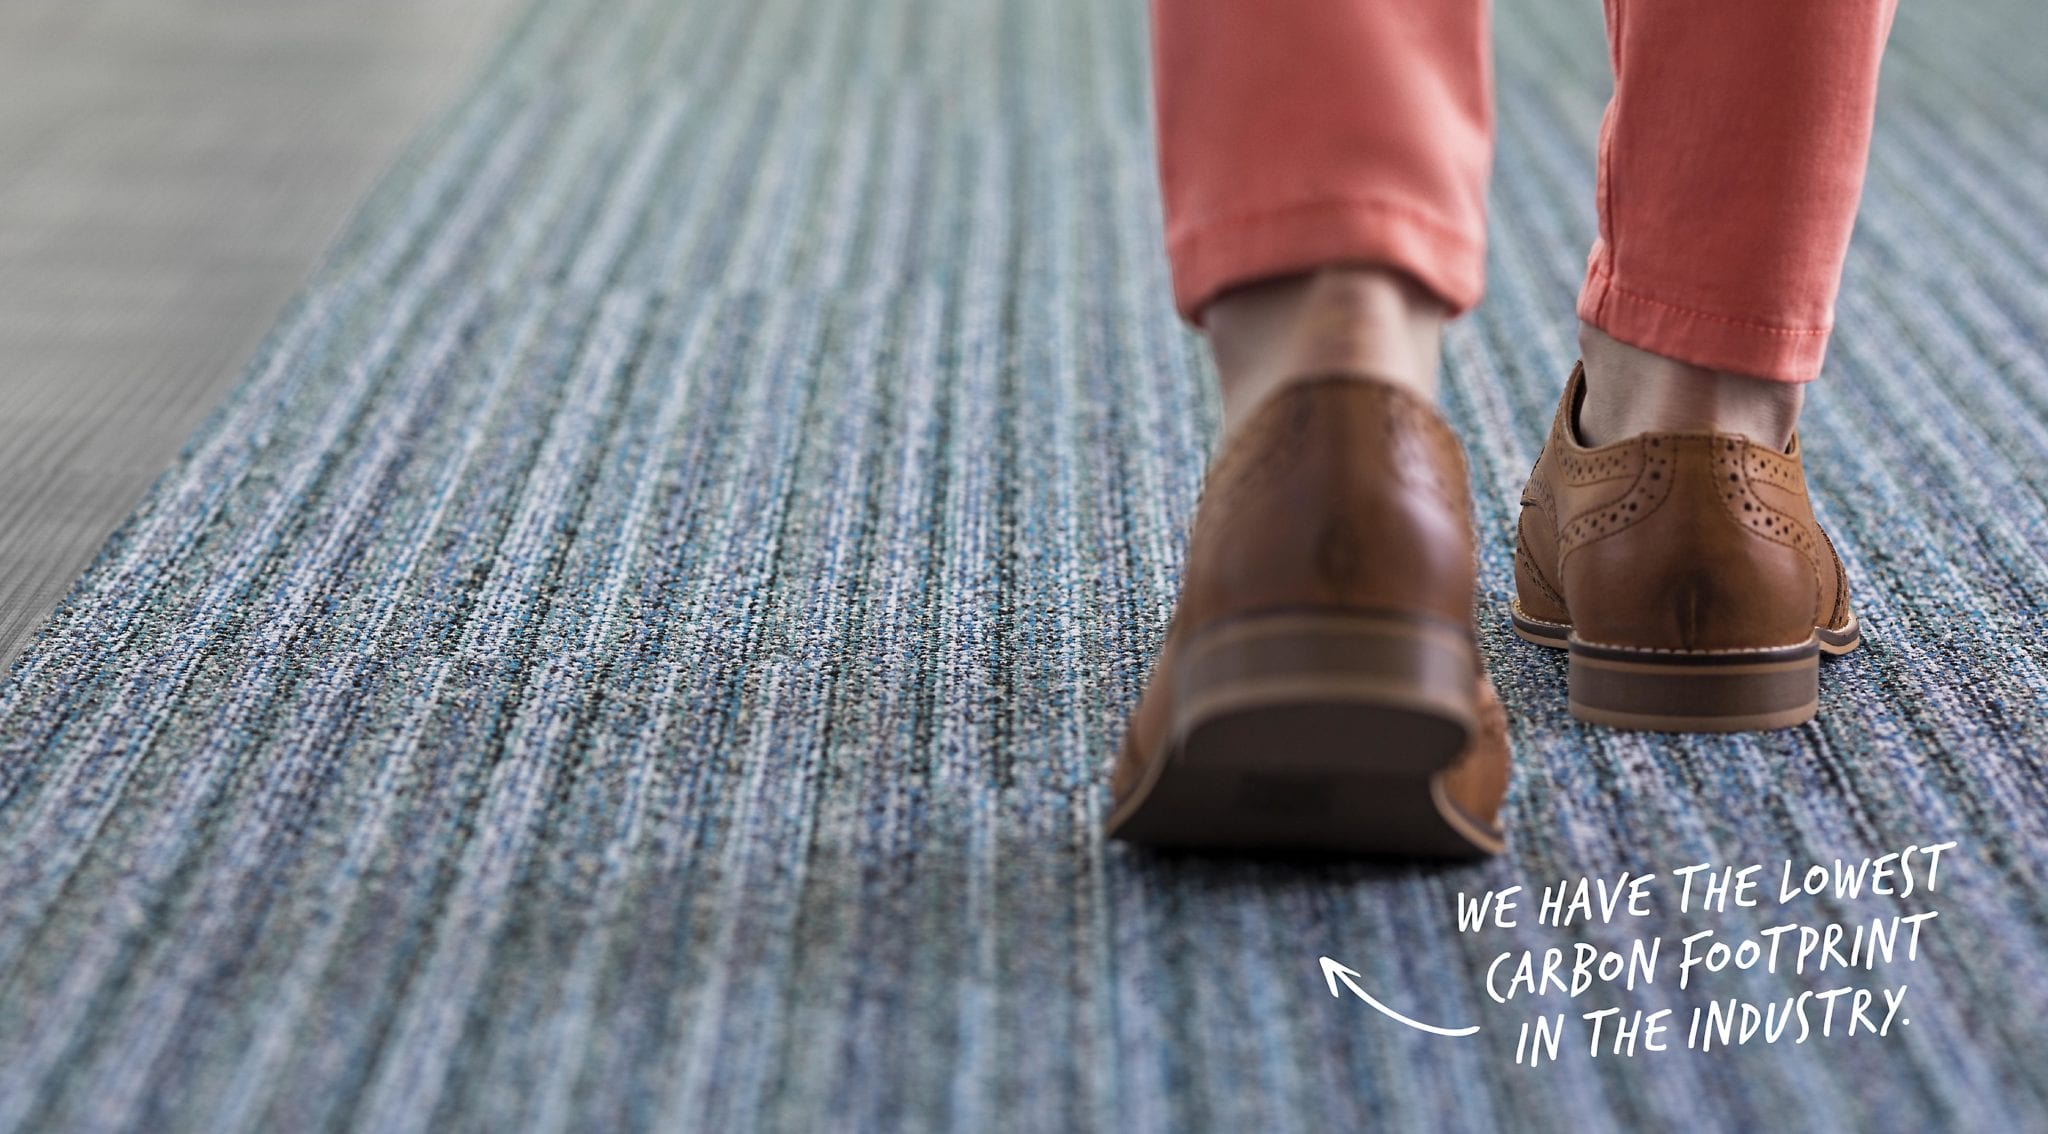 CARBON-NEUTRAL FLOORING'S CREDENTIALS TO BOOST 'GREEN' STATUS